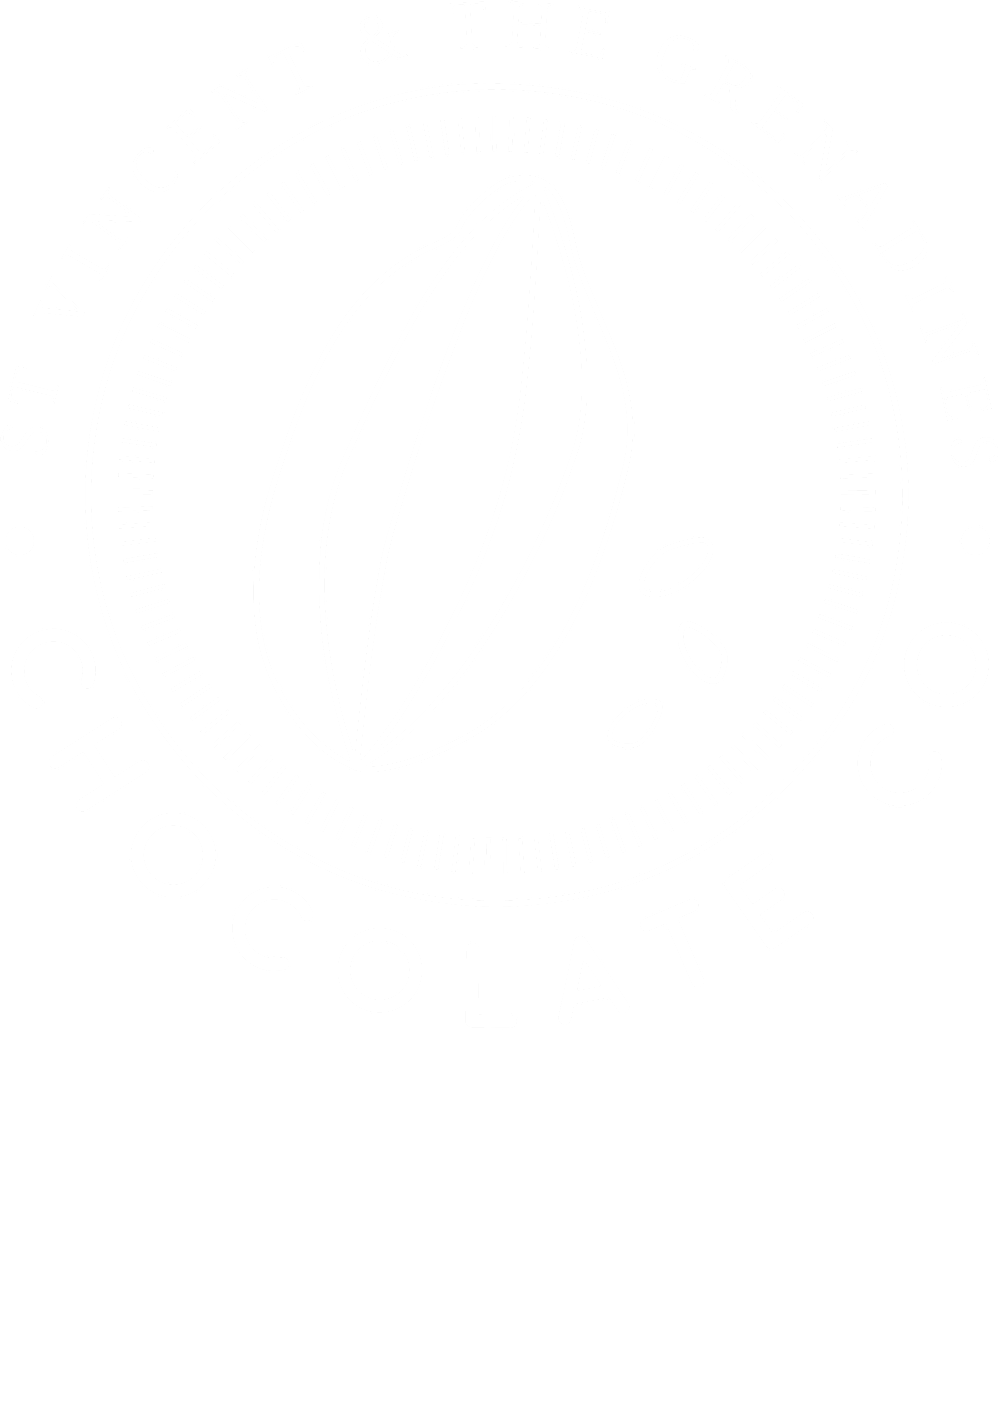 ISLANDS LOGO HD WHITE.png